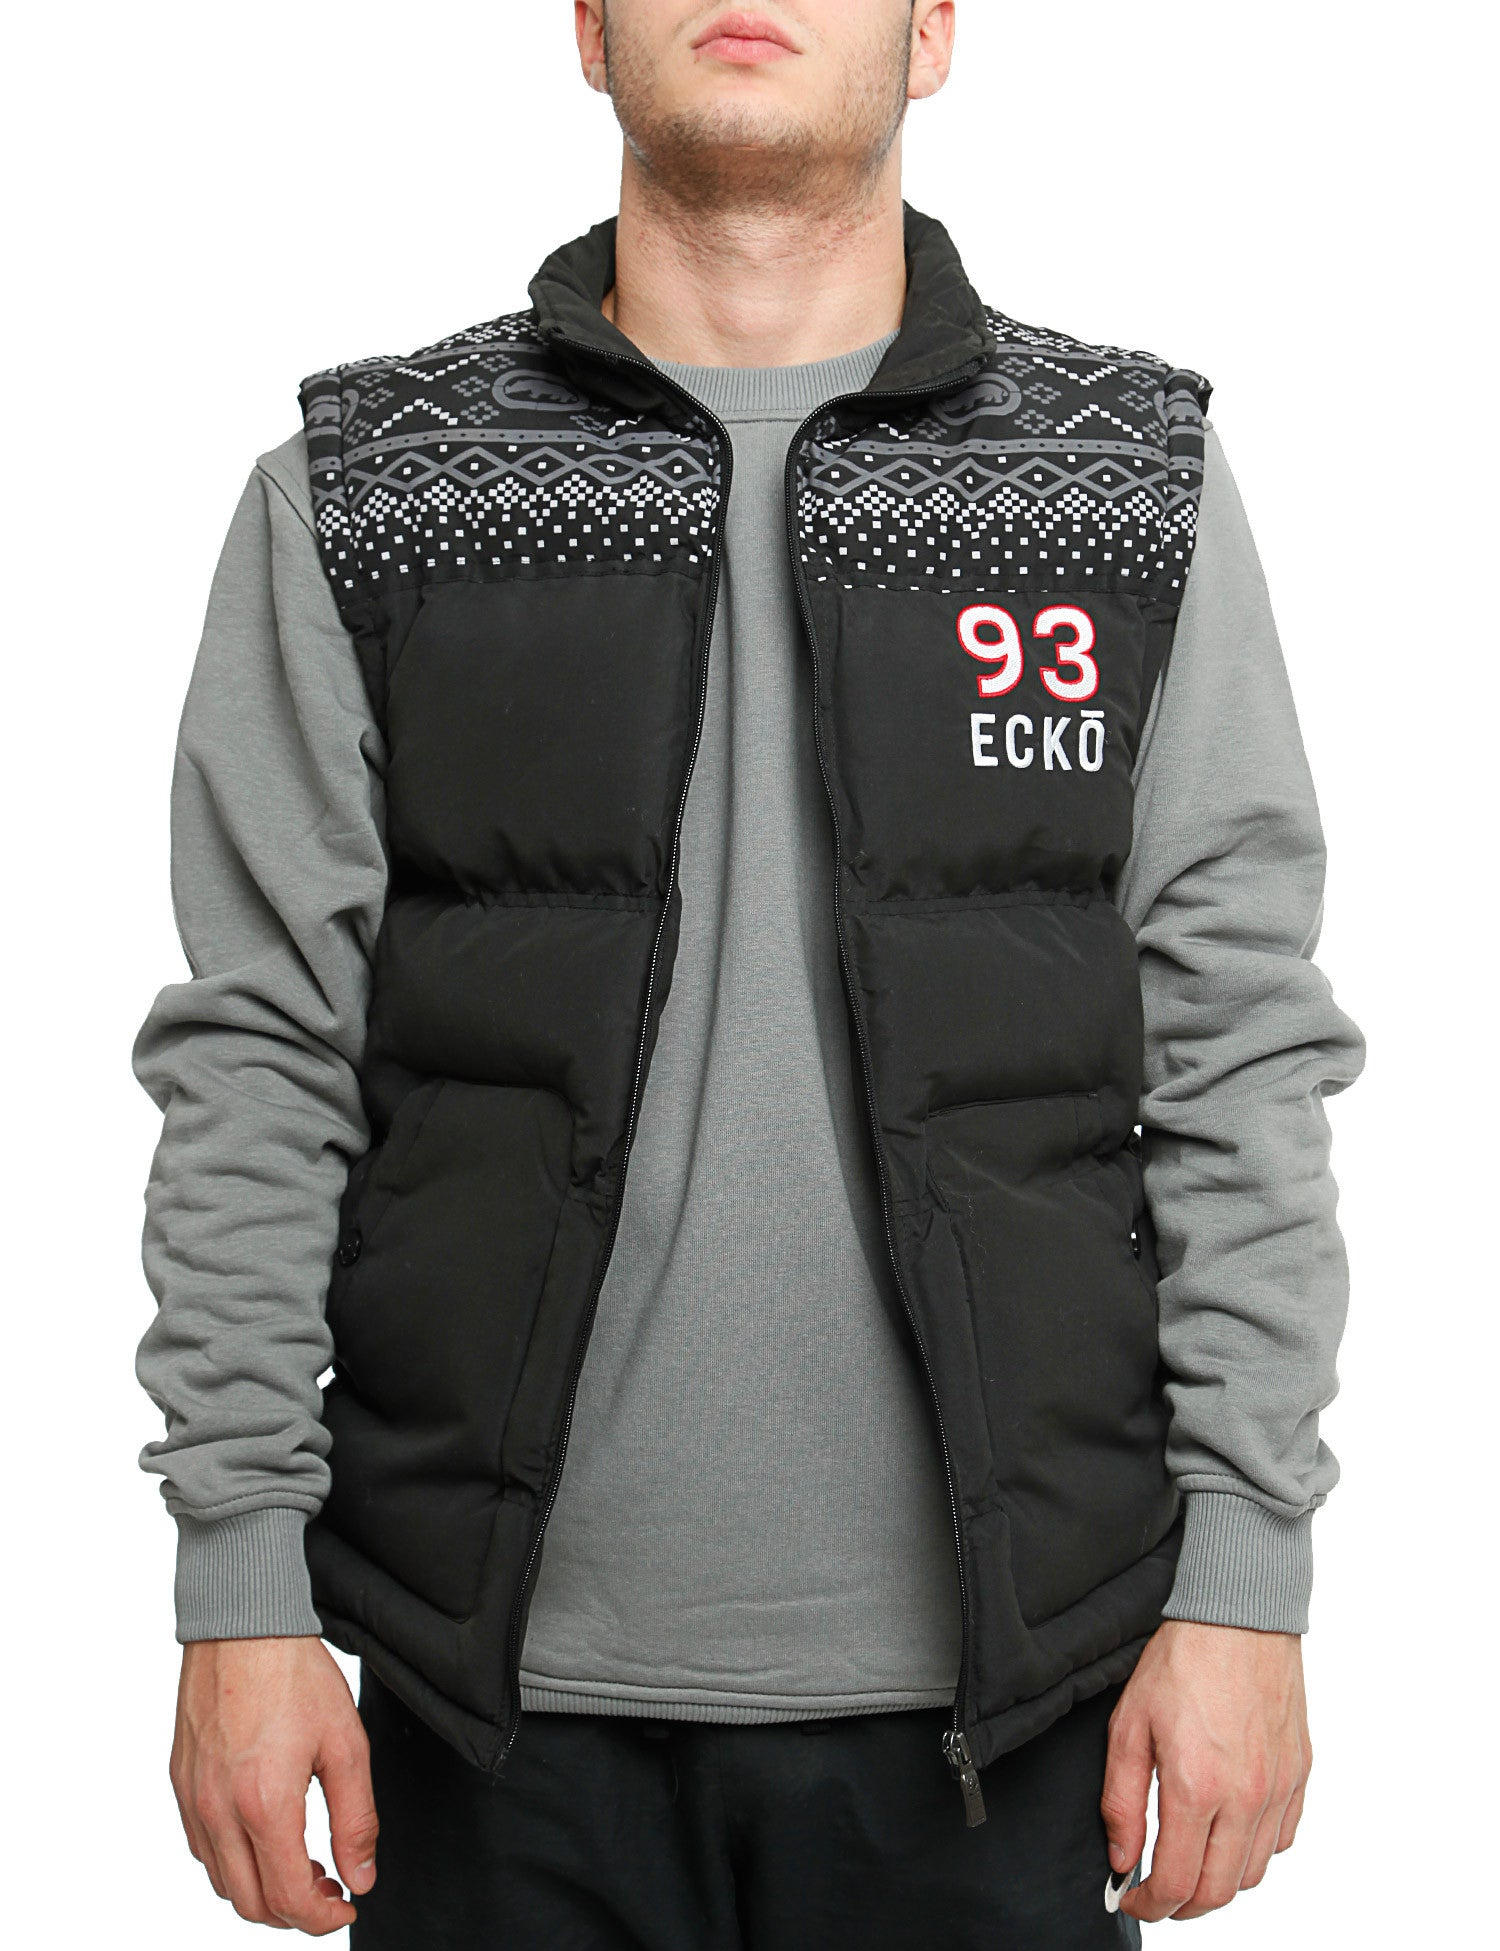 Image of Ecko Aldgate Vest Black